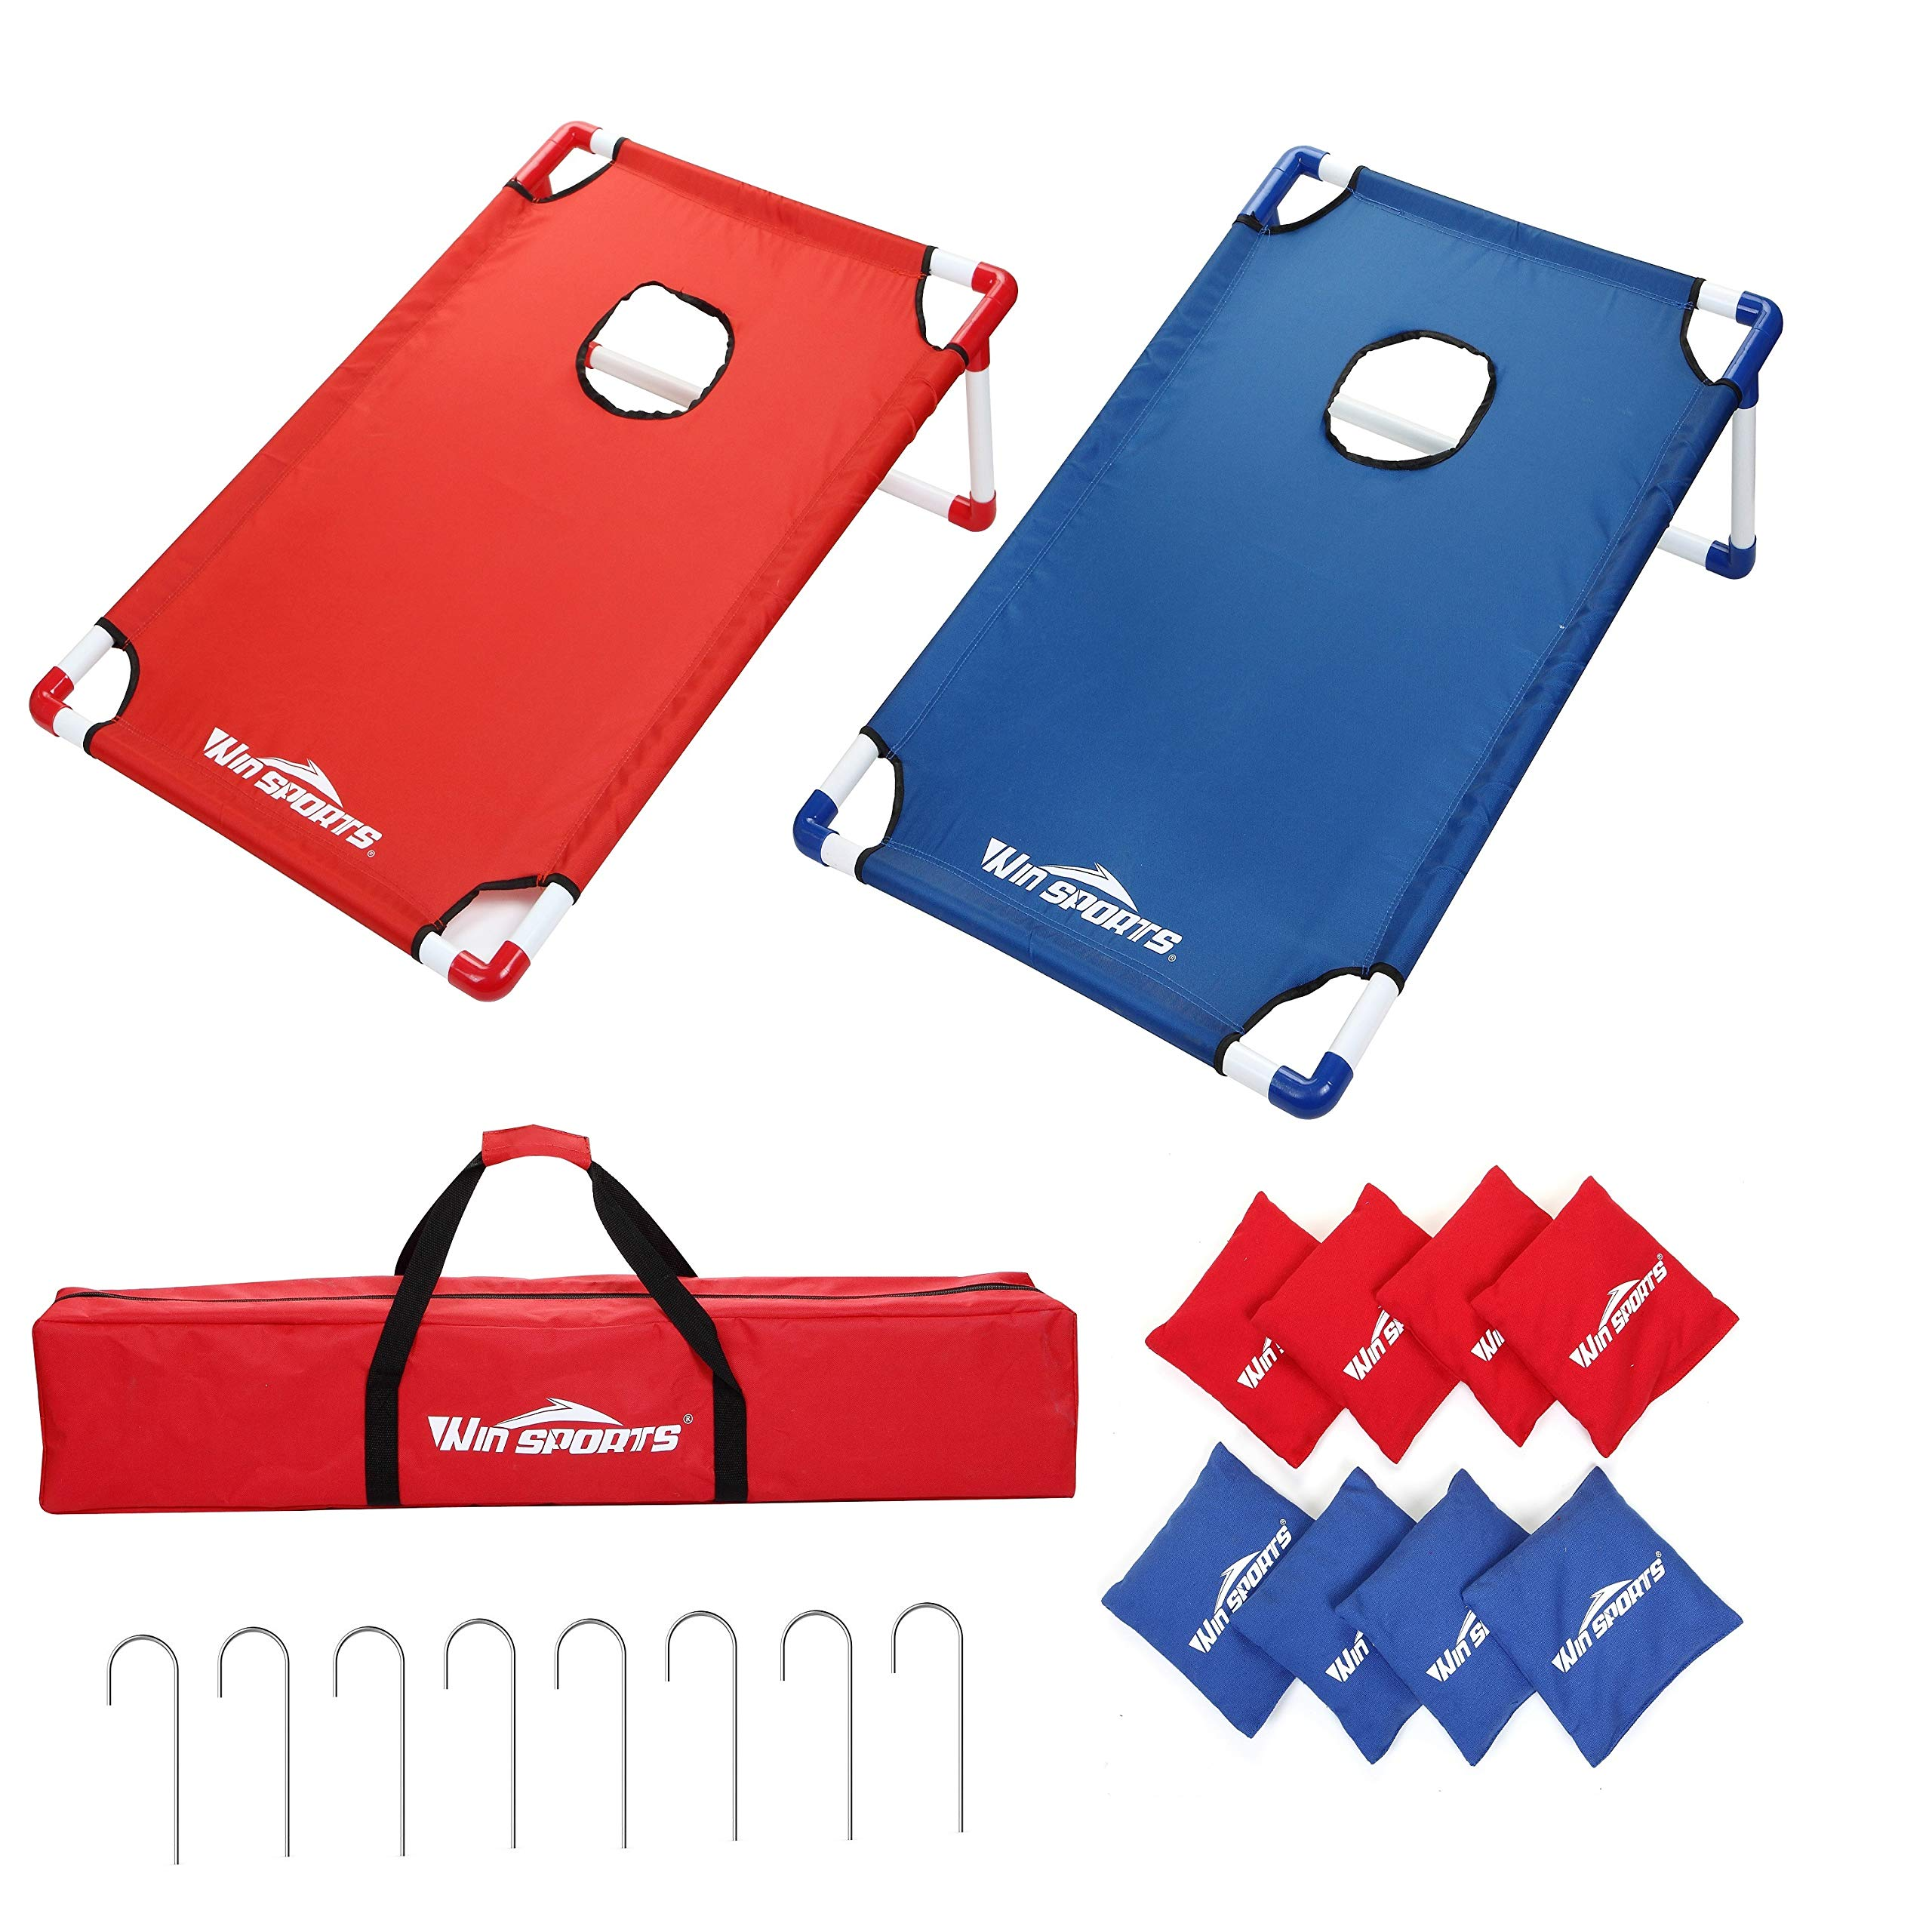 Win SPORTS Portable Assemble PVC Framed Cornhole Toss Game Set with 8 Bean Bags and Carrying Case(3 x 2-feet) - Choose Flag Design, Red & Blue (Red&Blue) by Win SPORTS